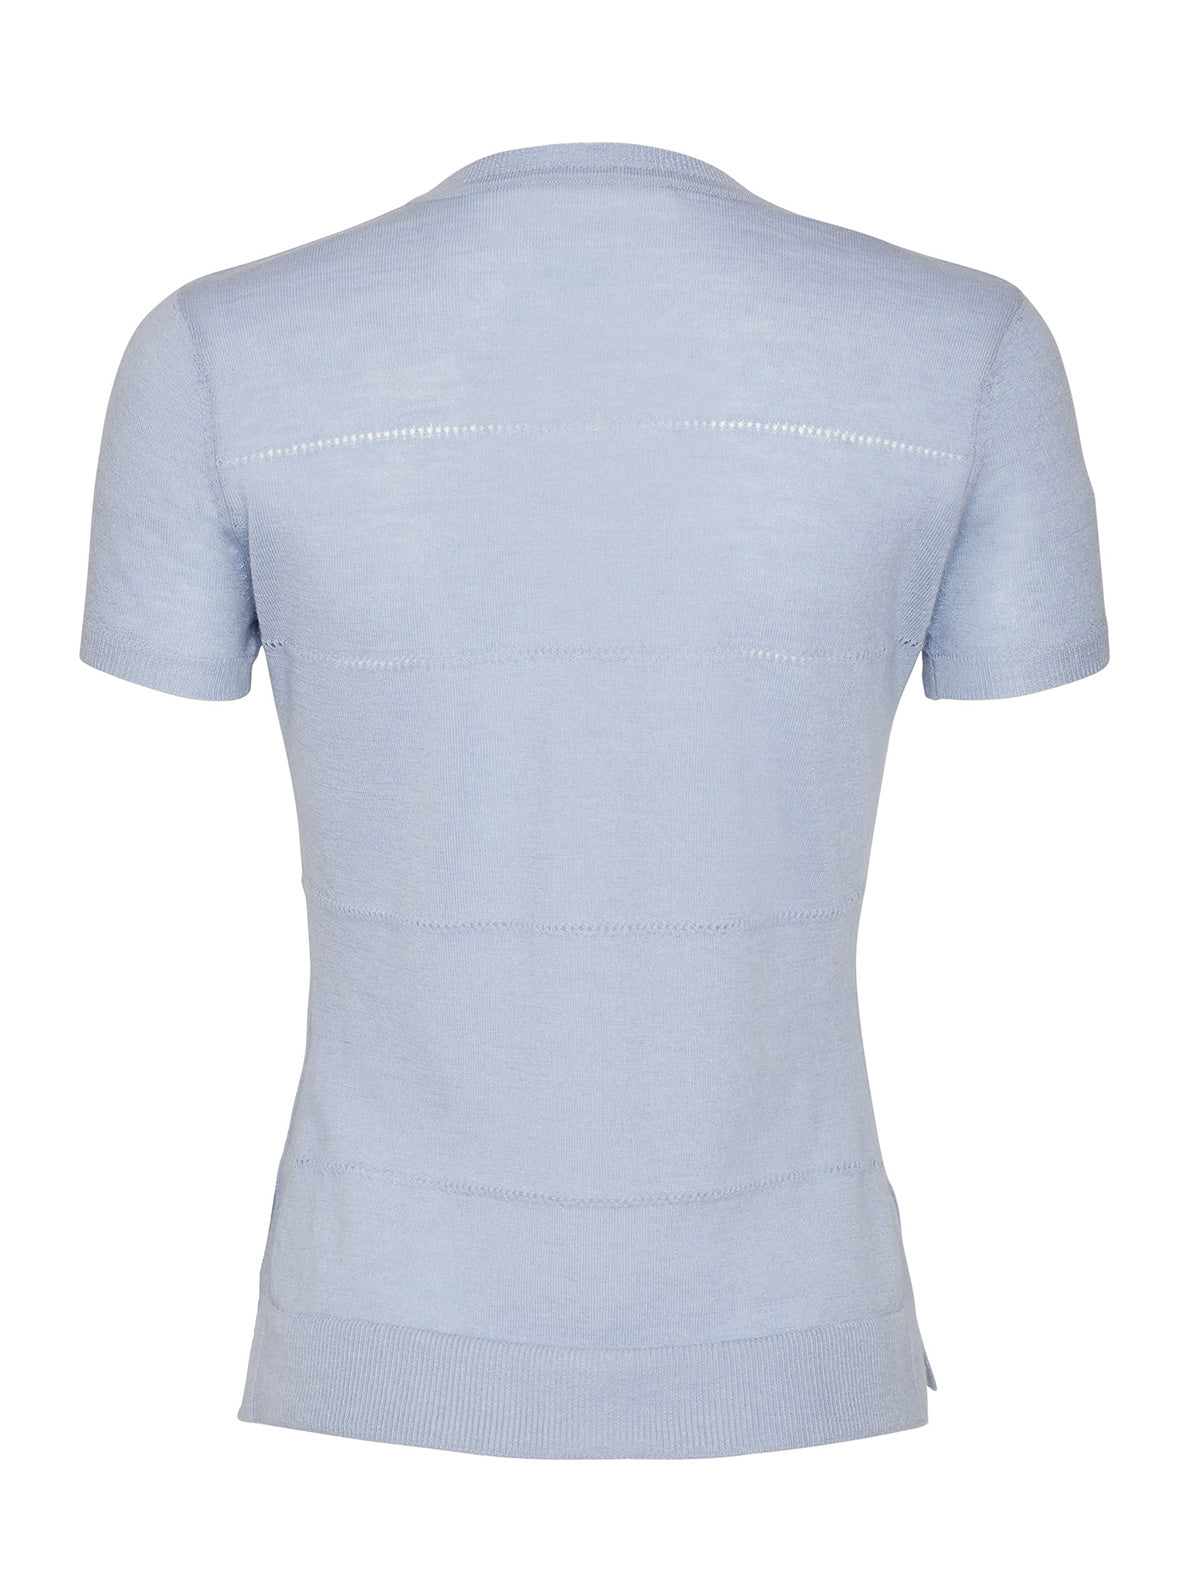 SIDE SLIT TEE, LIGHT BLUE